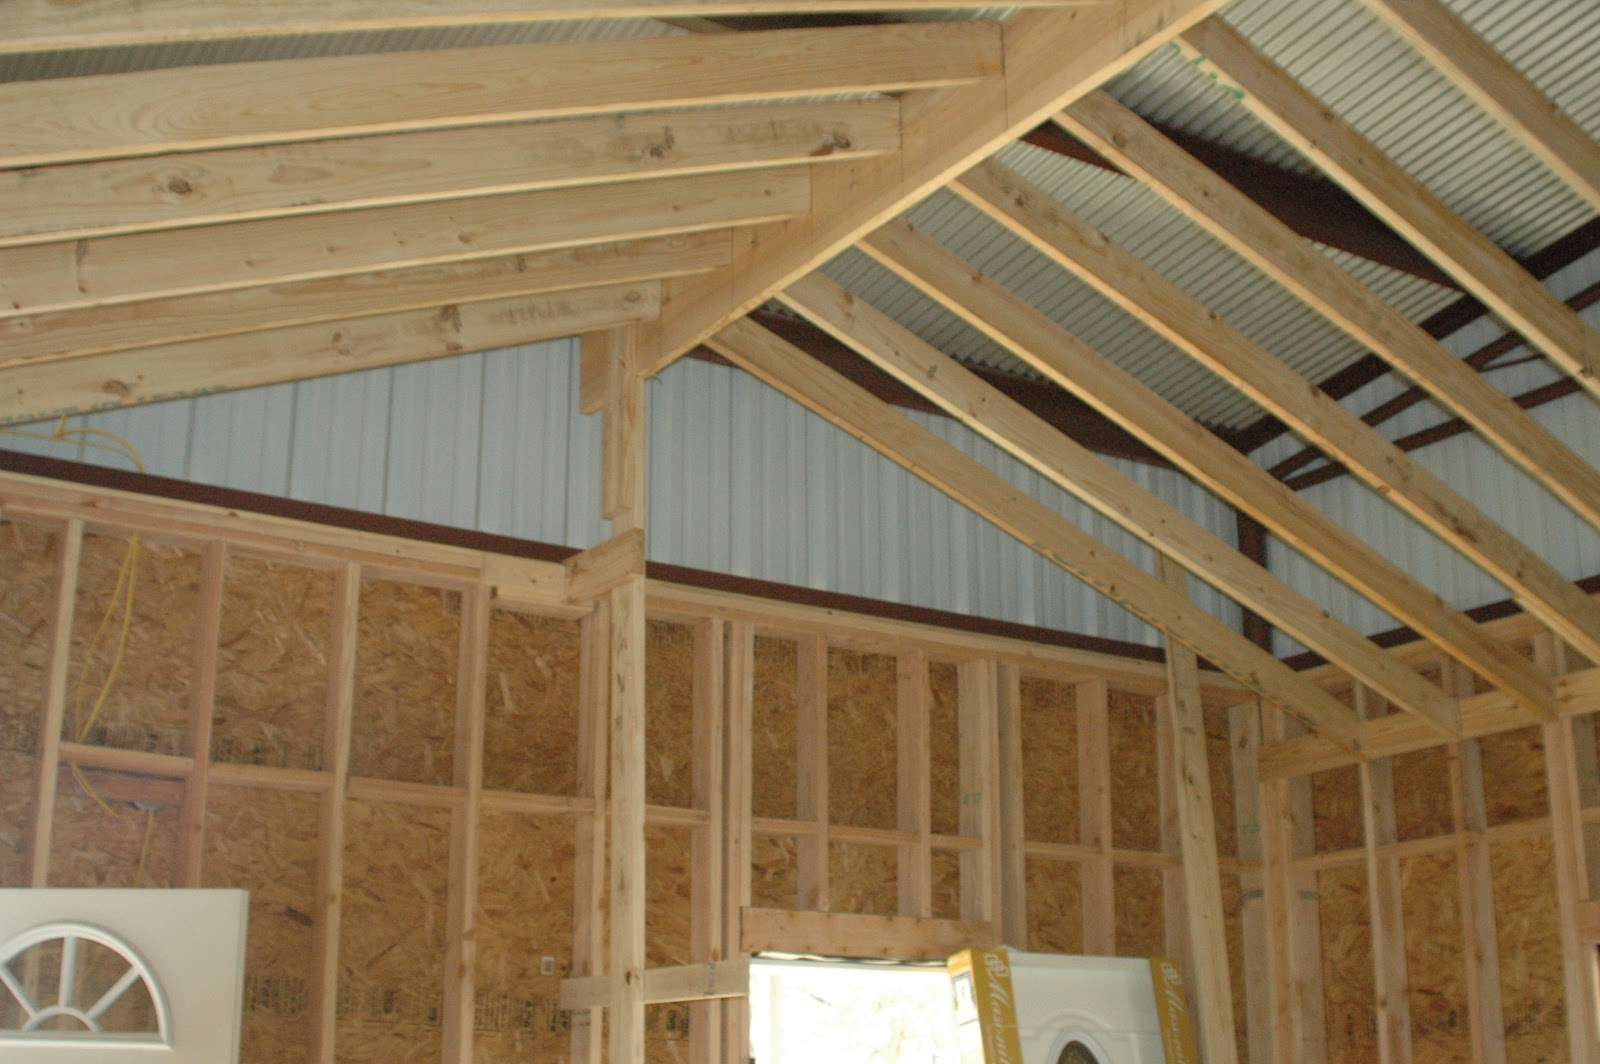 Christie texas homestead christmas 2011 and january 2012 for Vaulted ceiling plans